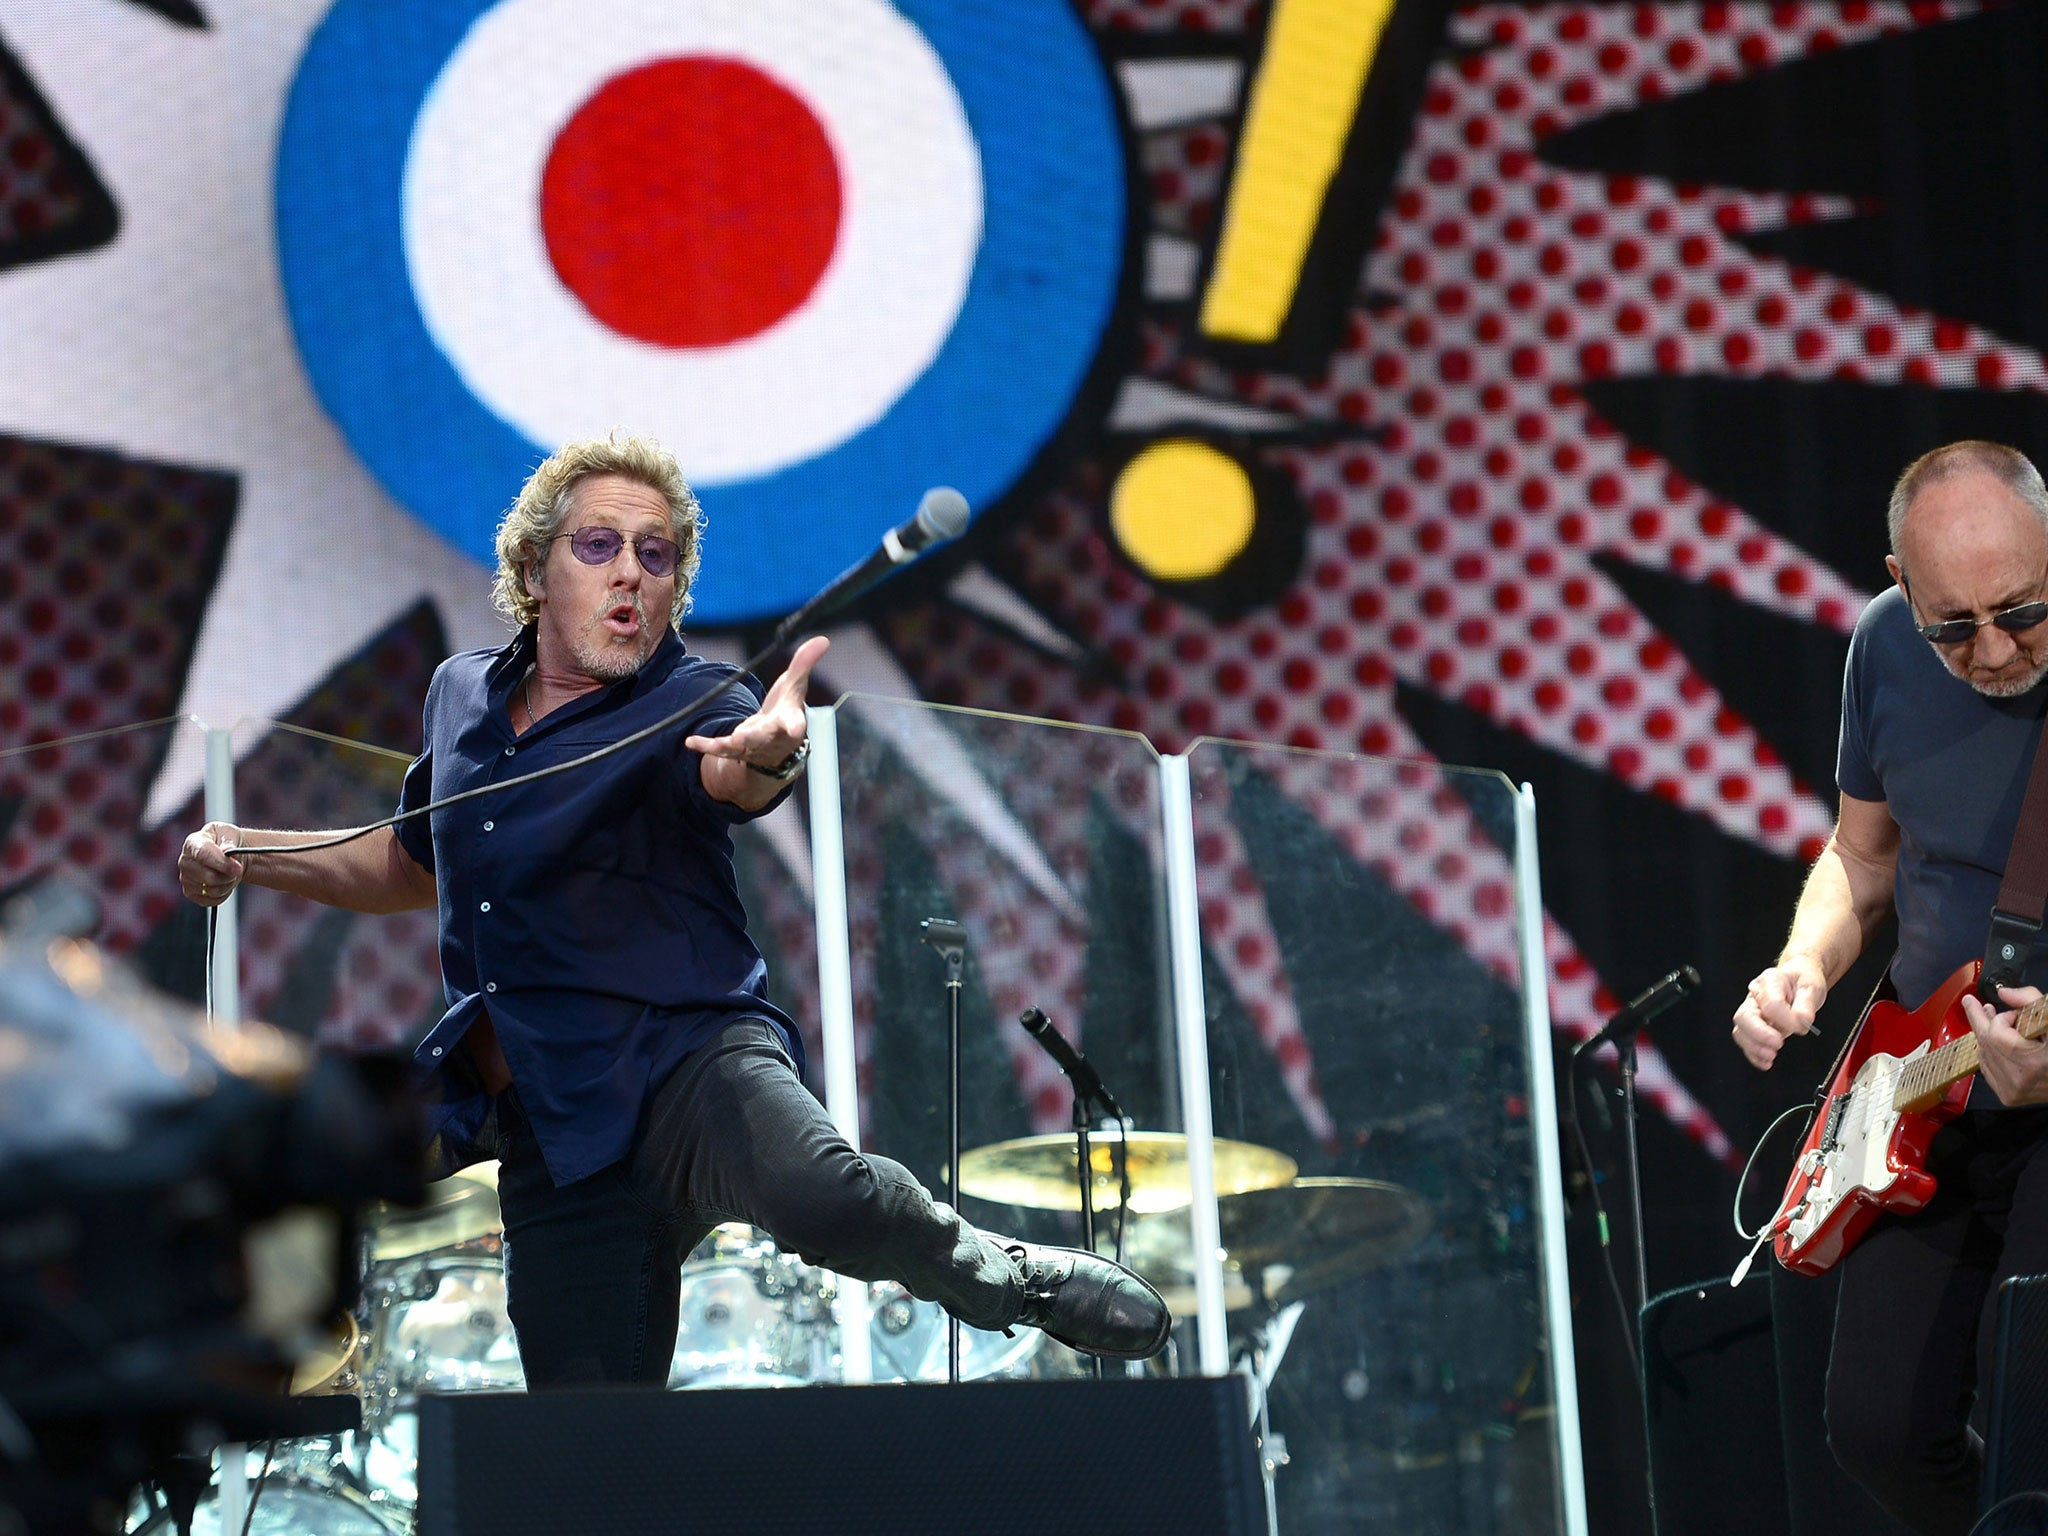 The Who's 20 greatest songs, ranked – from 'My Generation' to 'Pinball Wizard'